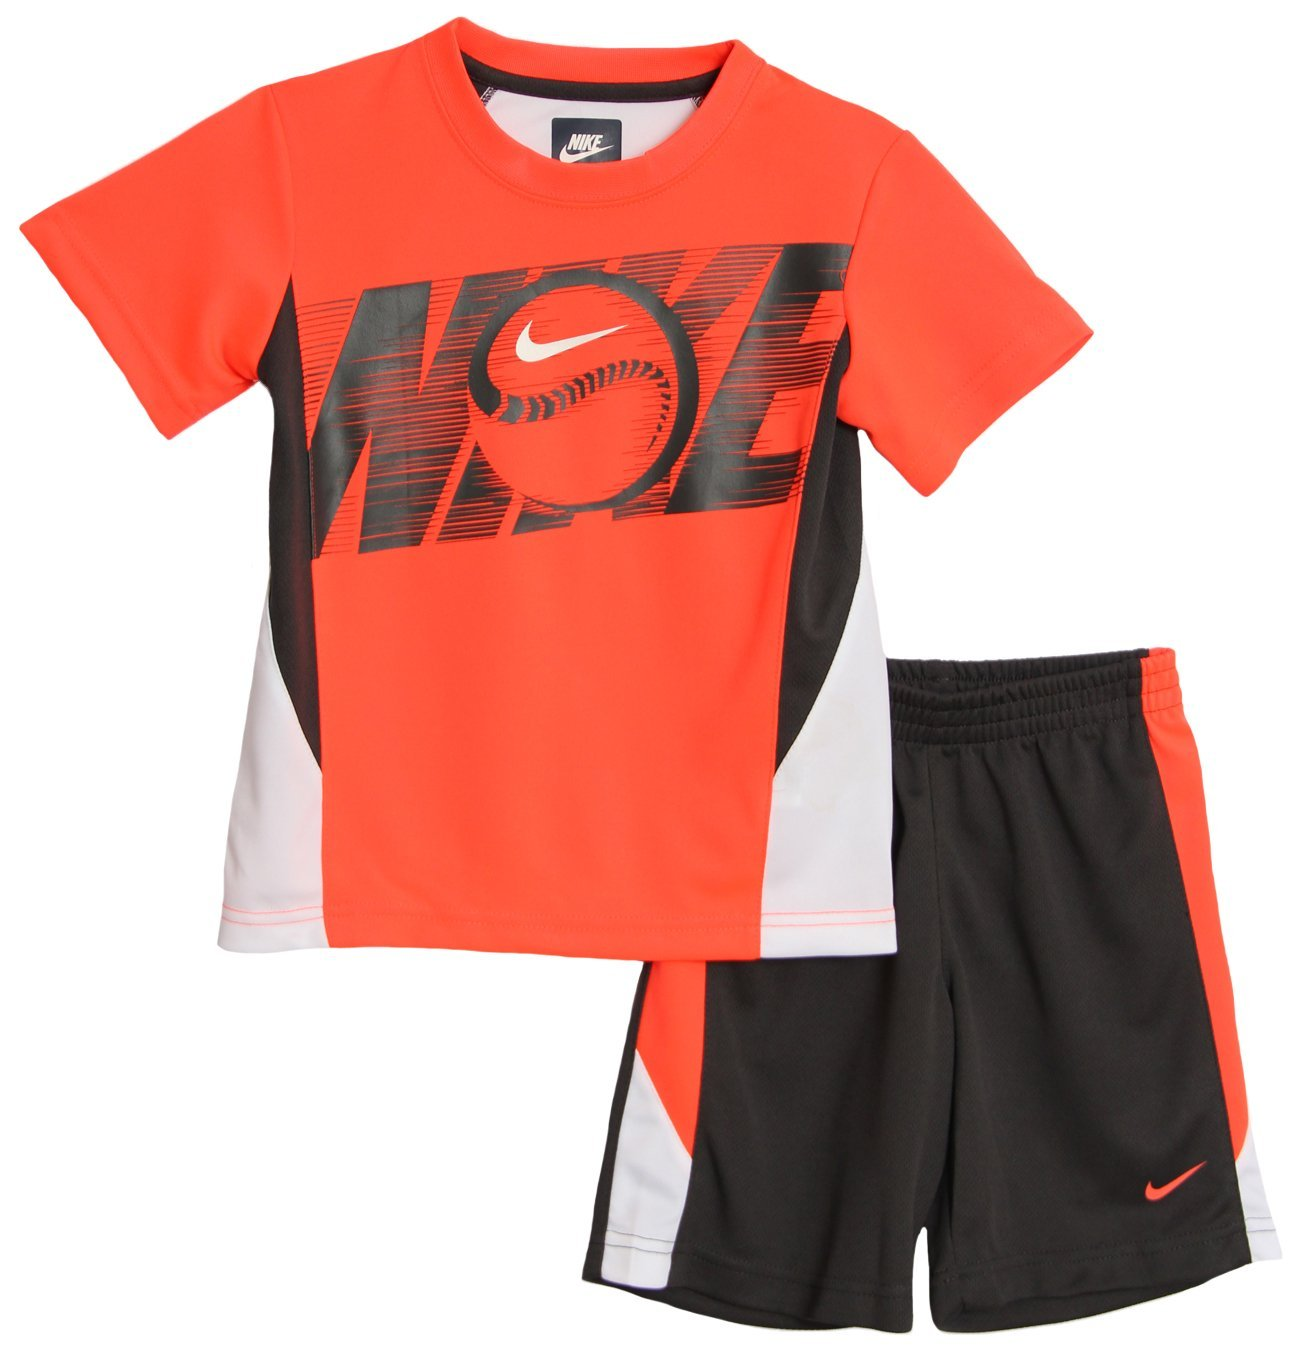 75bd99fae Nike Little Boys' 2 Piece Neon Orange Athletic T-shirt Basketball Shorts Set